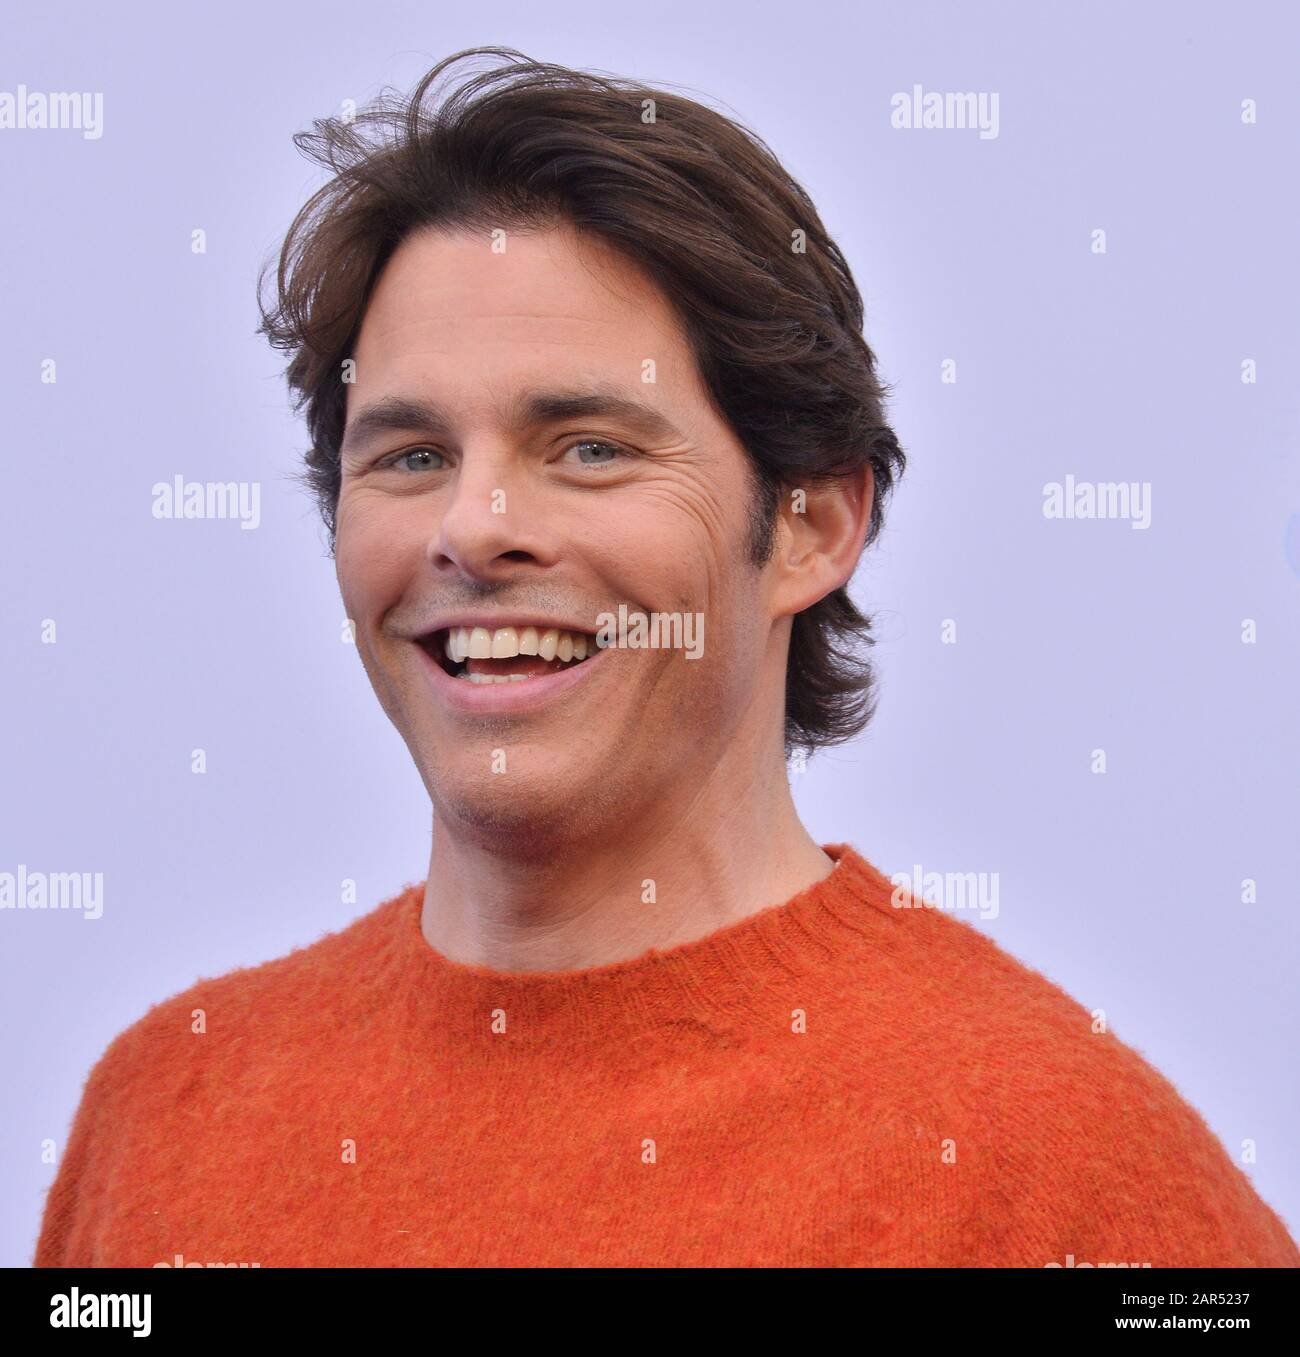 Los Angeles United States 26th Jan 2020 Cast Member James Marsden Attends The Sonic The Hedgehog Family Day Event On The Paramount Pictures Lot In Los Angeles On Saturday January 25 2020